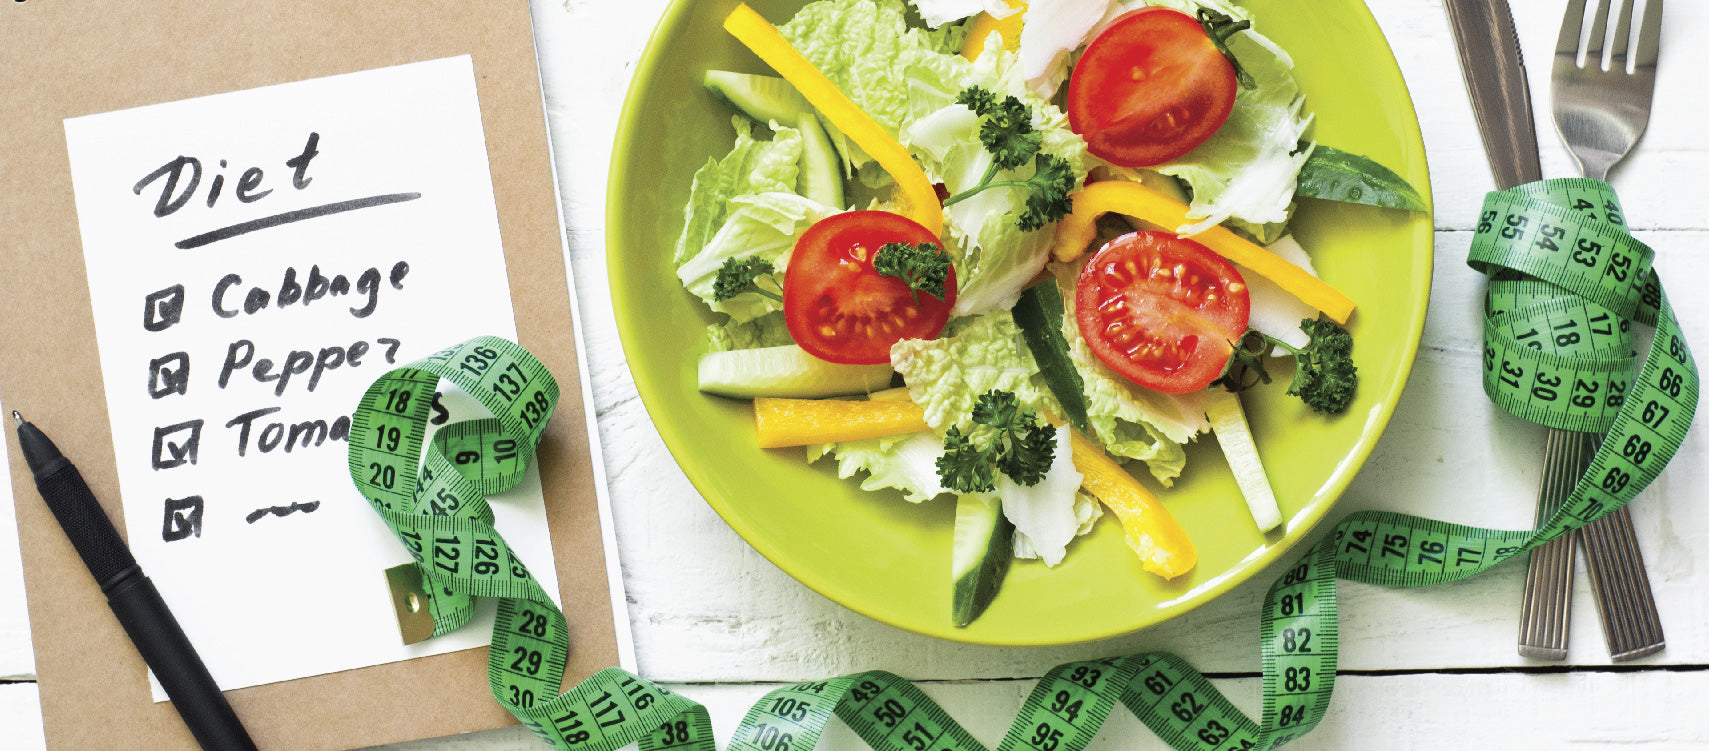 Diet list with plate of salad and a tape measure